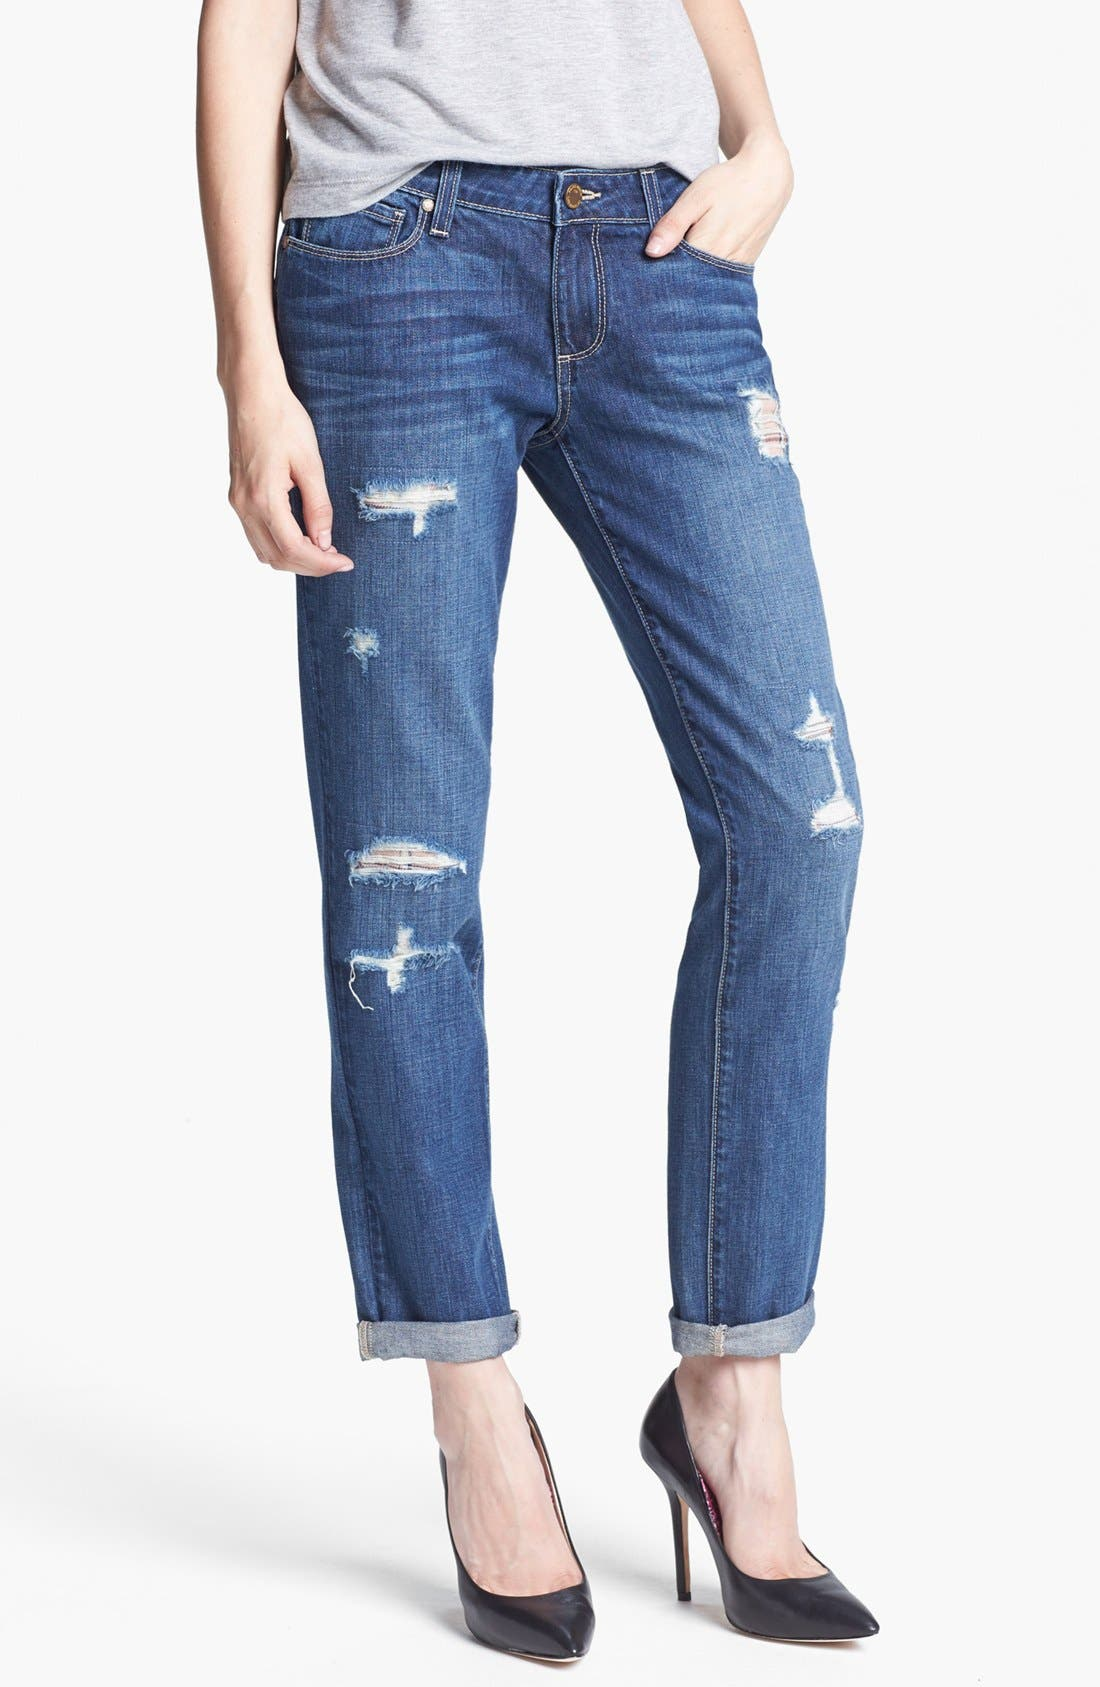 Main Image - Paige Denim 'Jimmy Jimmy' Distressed Straight Leg Jeans (Riot)